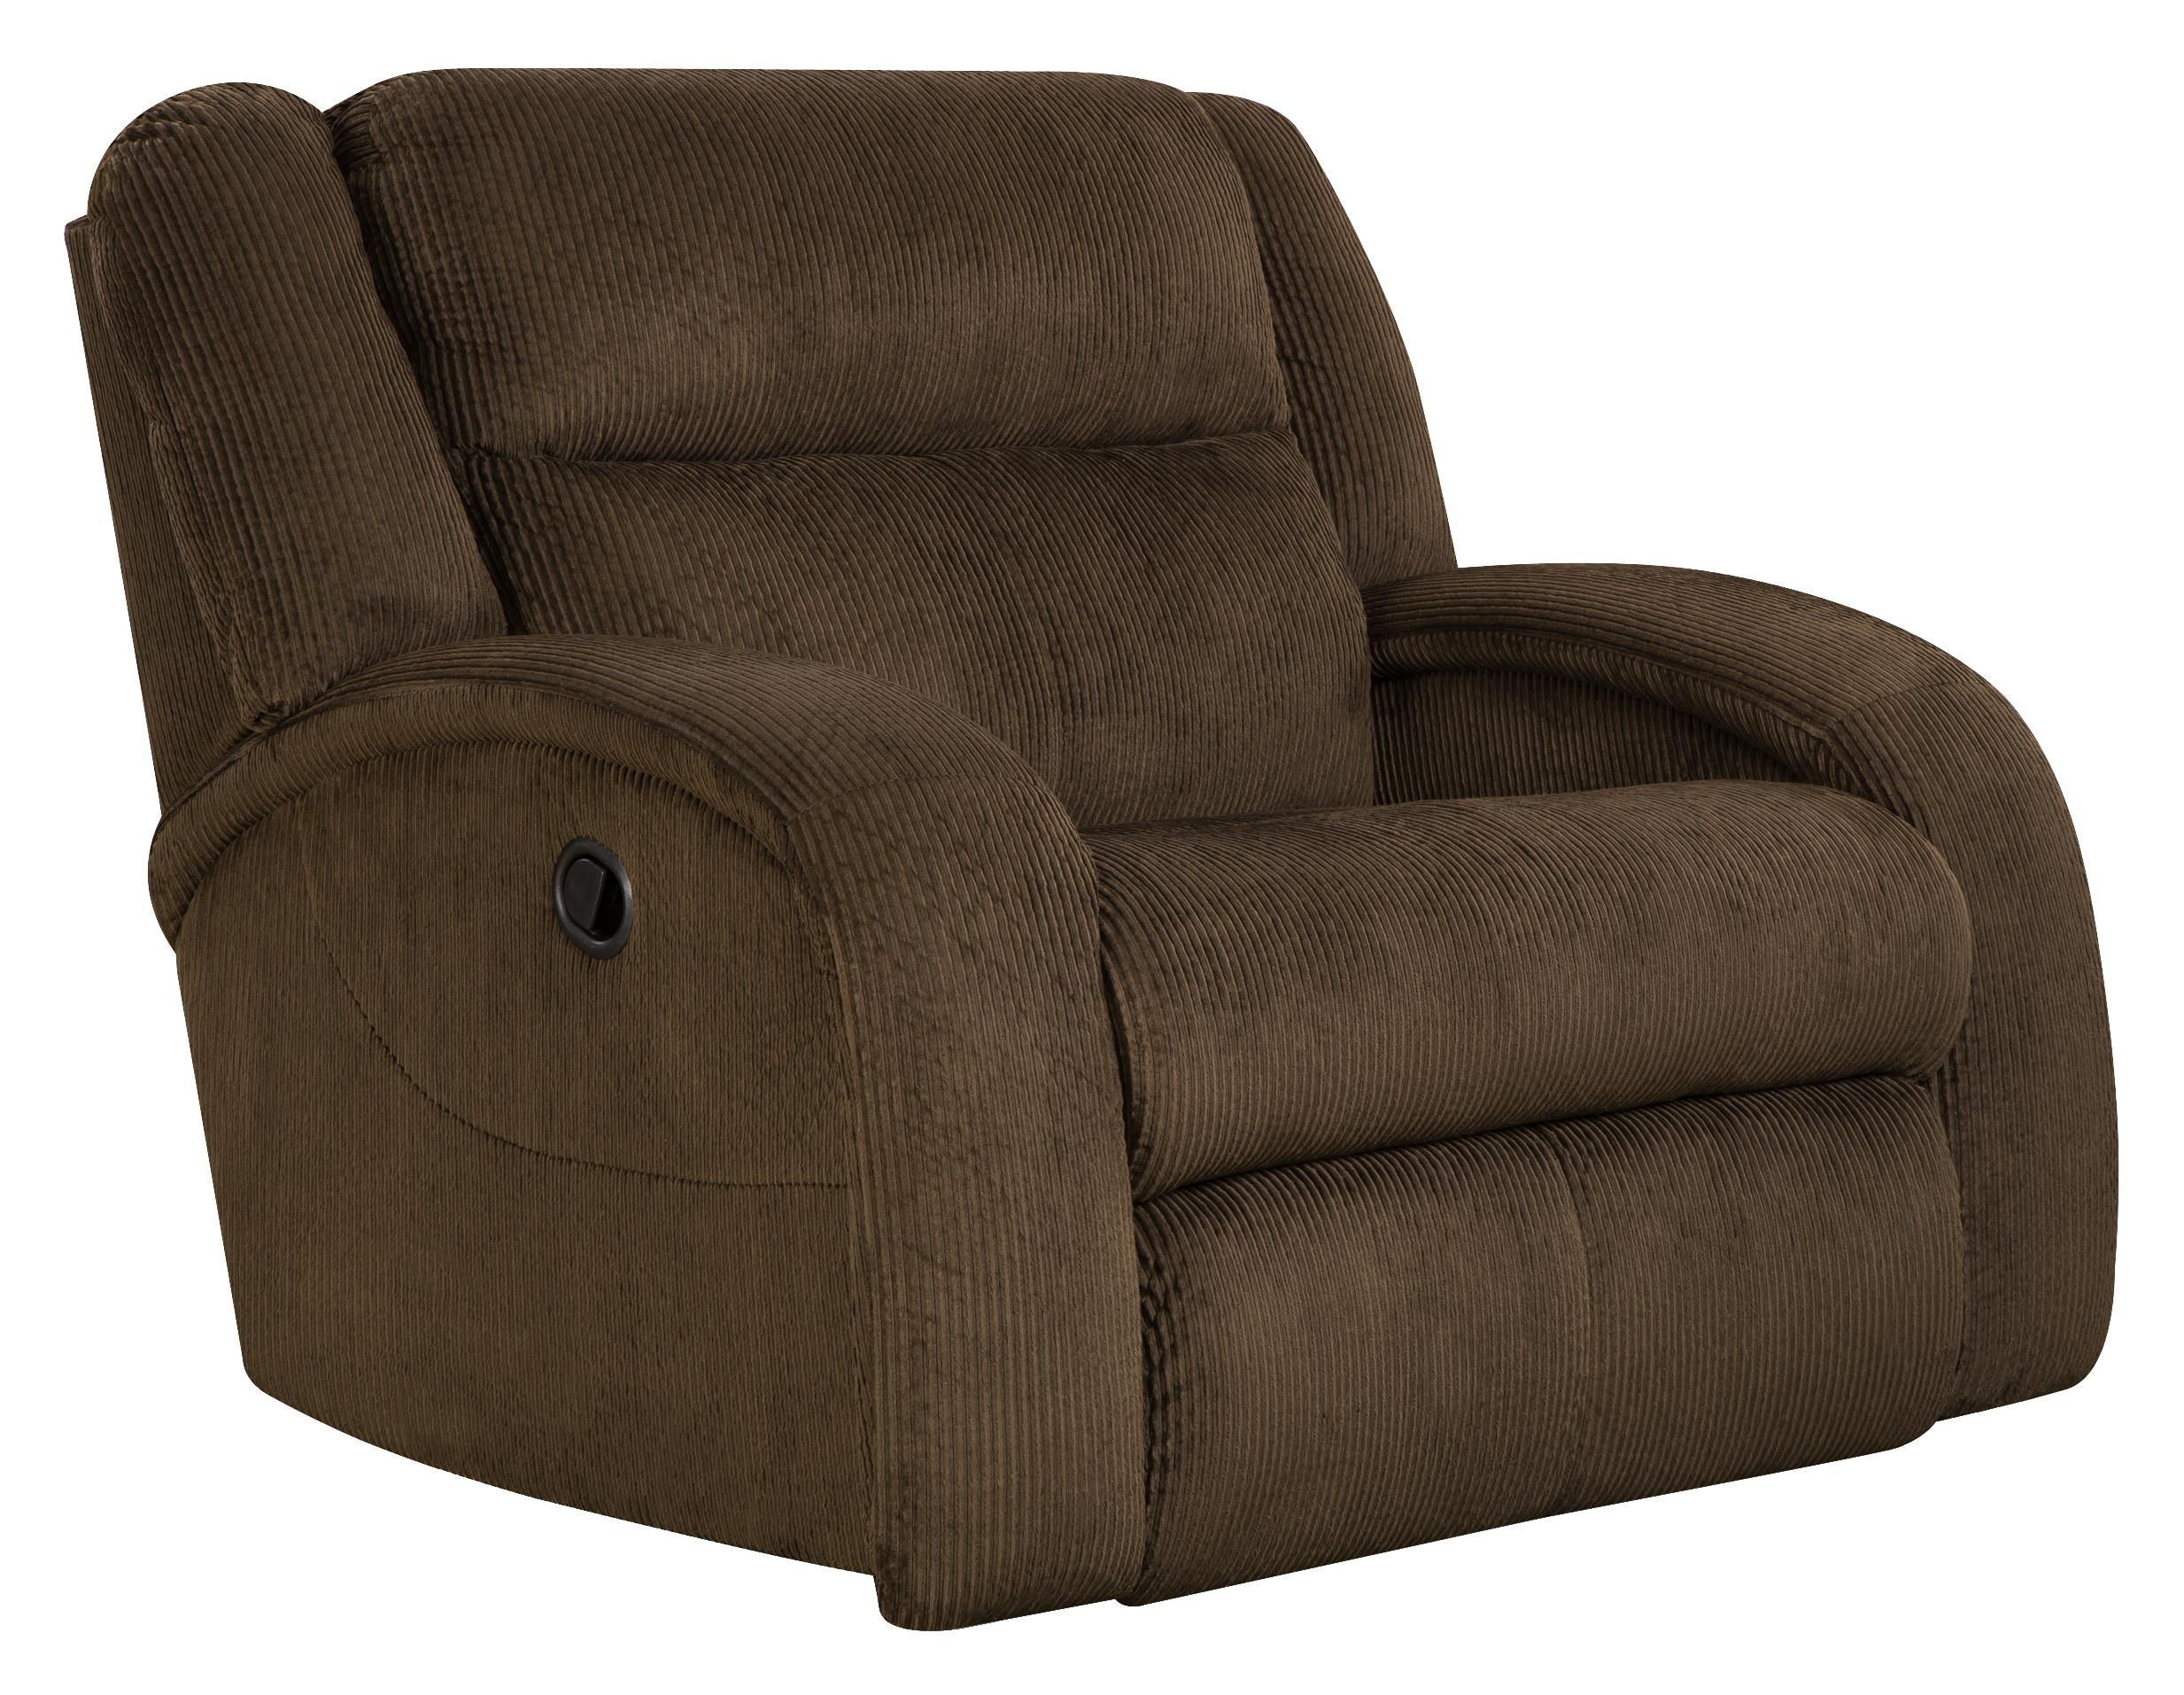 Layflat Chair and a Half Recliner